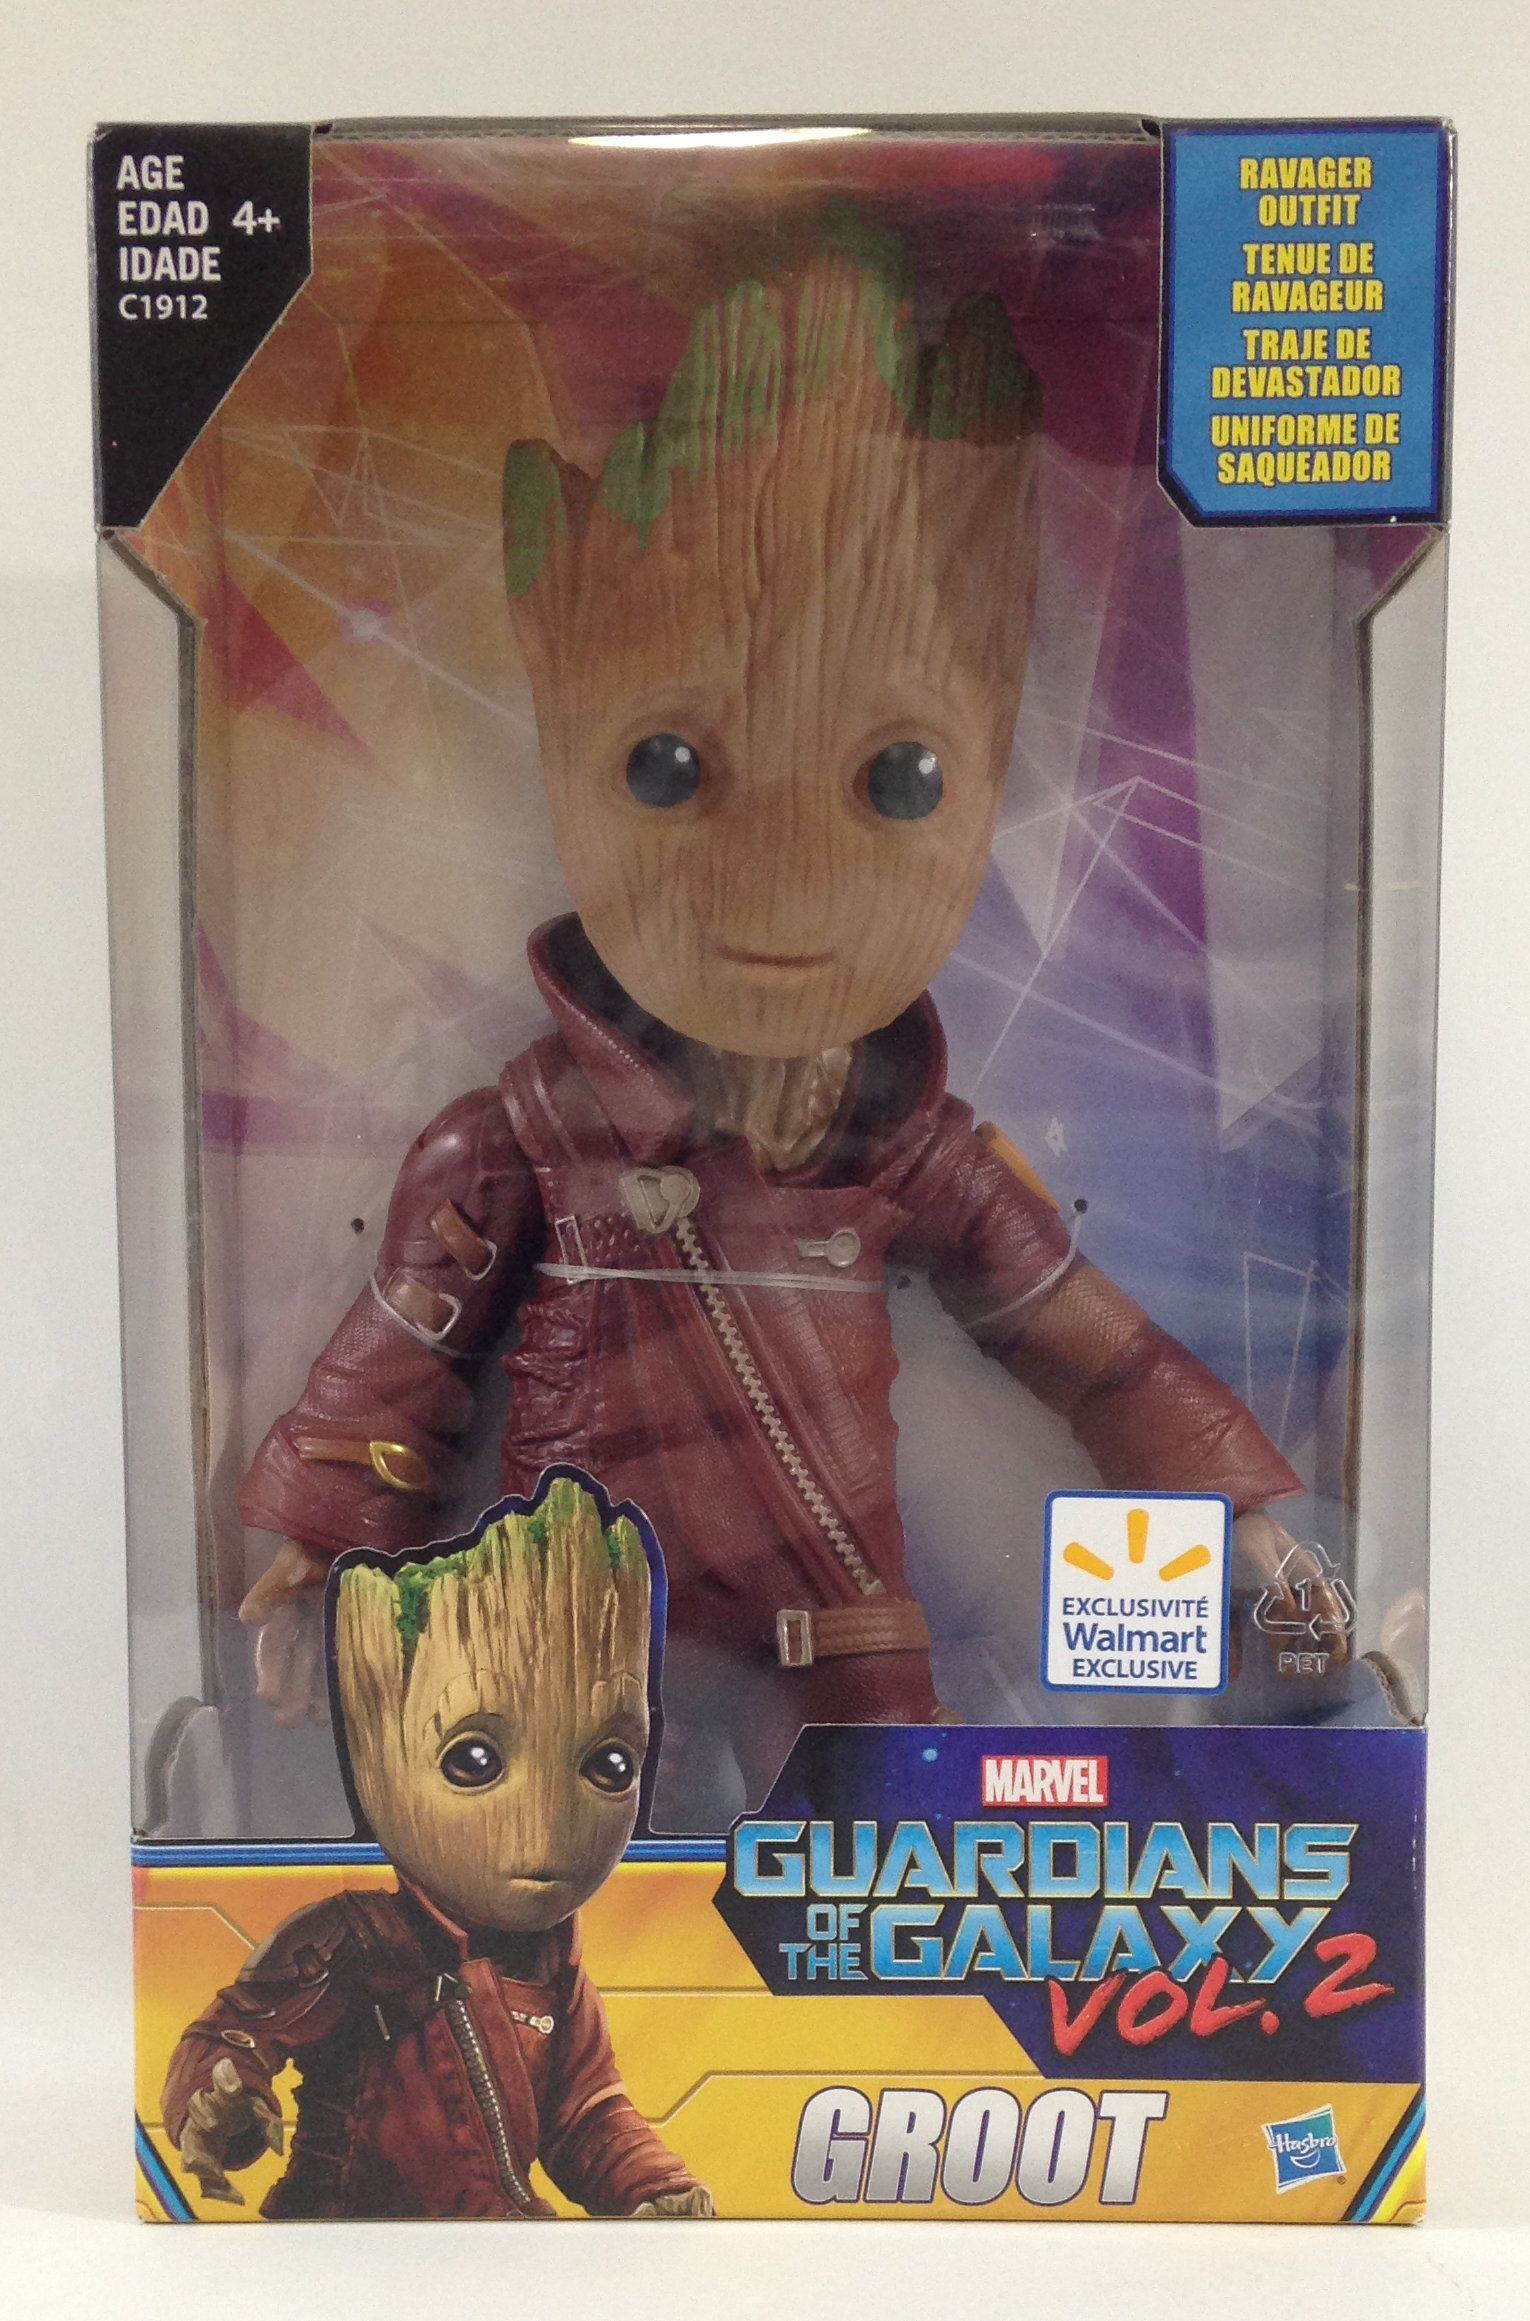 Guardians Of The Galaxy Vol 2 Ravager Groot Figure Guardians Of The Galaxy Vol 2 Groot Guardians Of The Galaxy